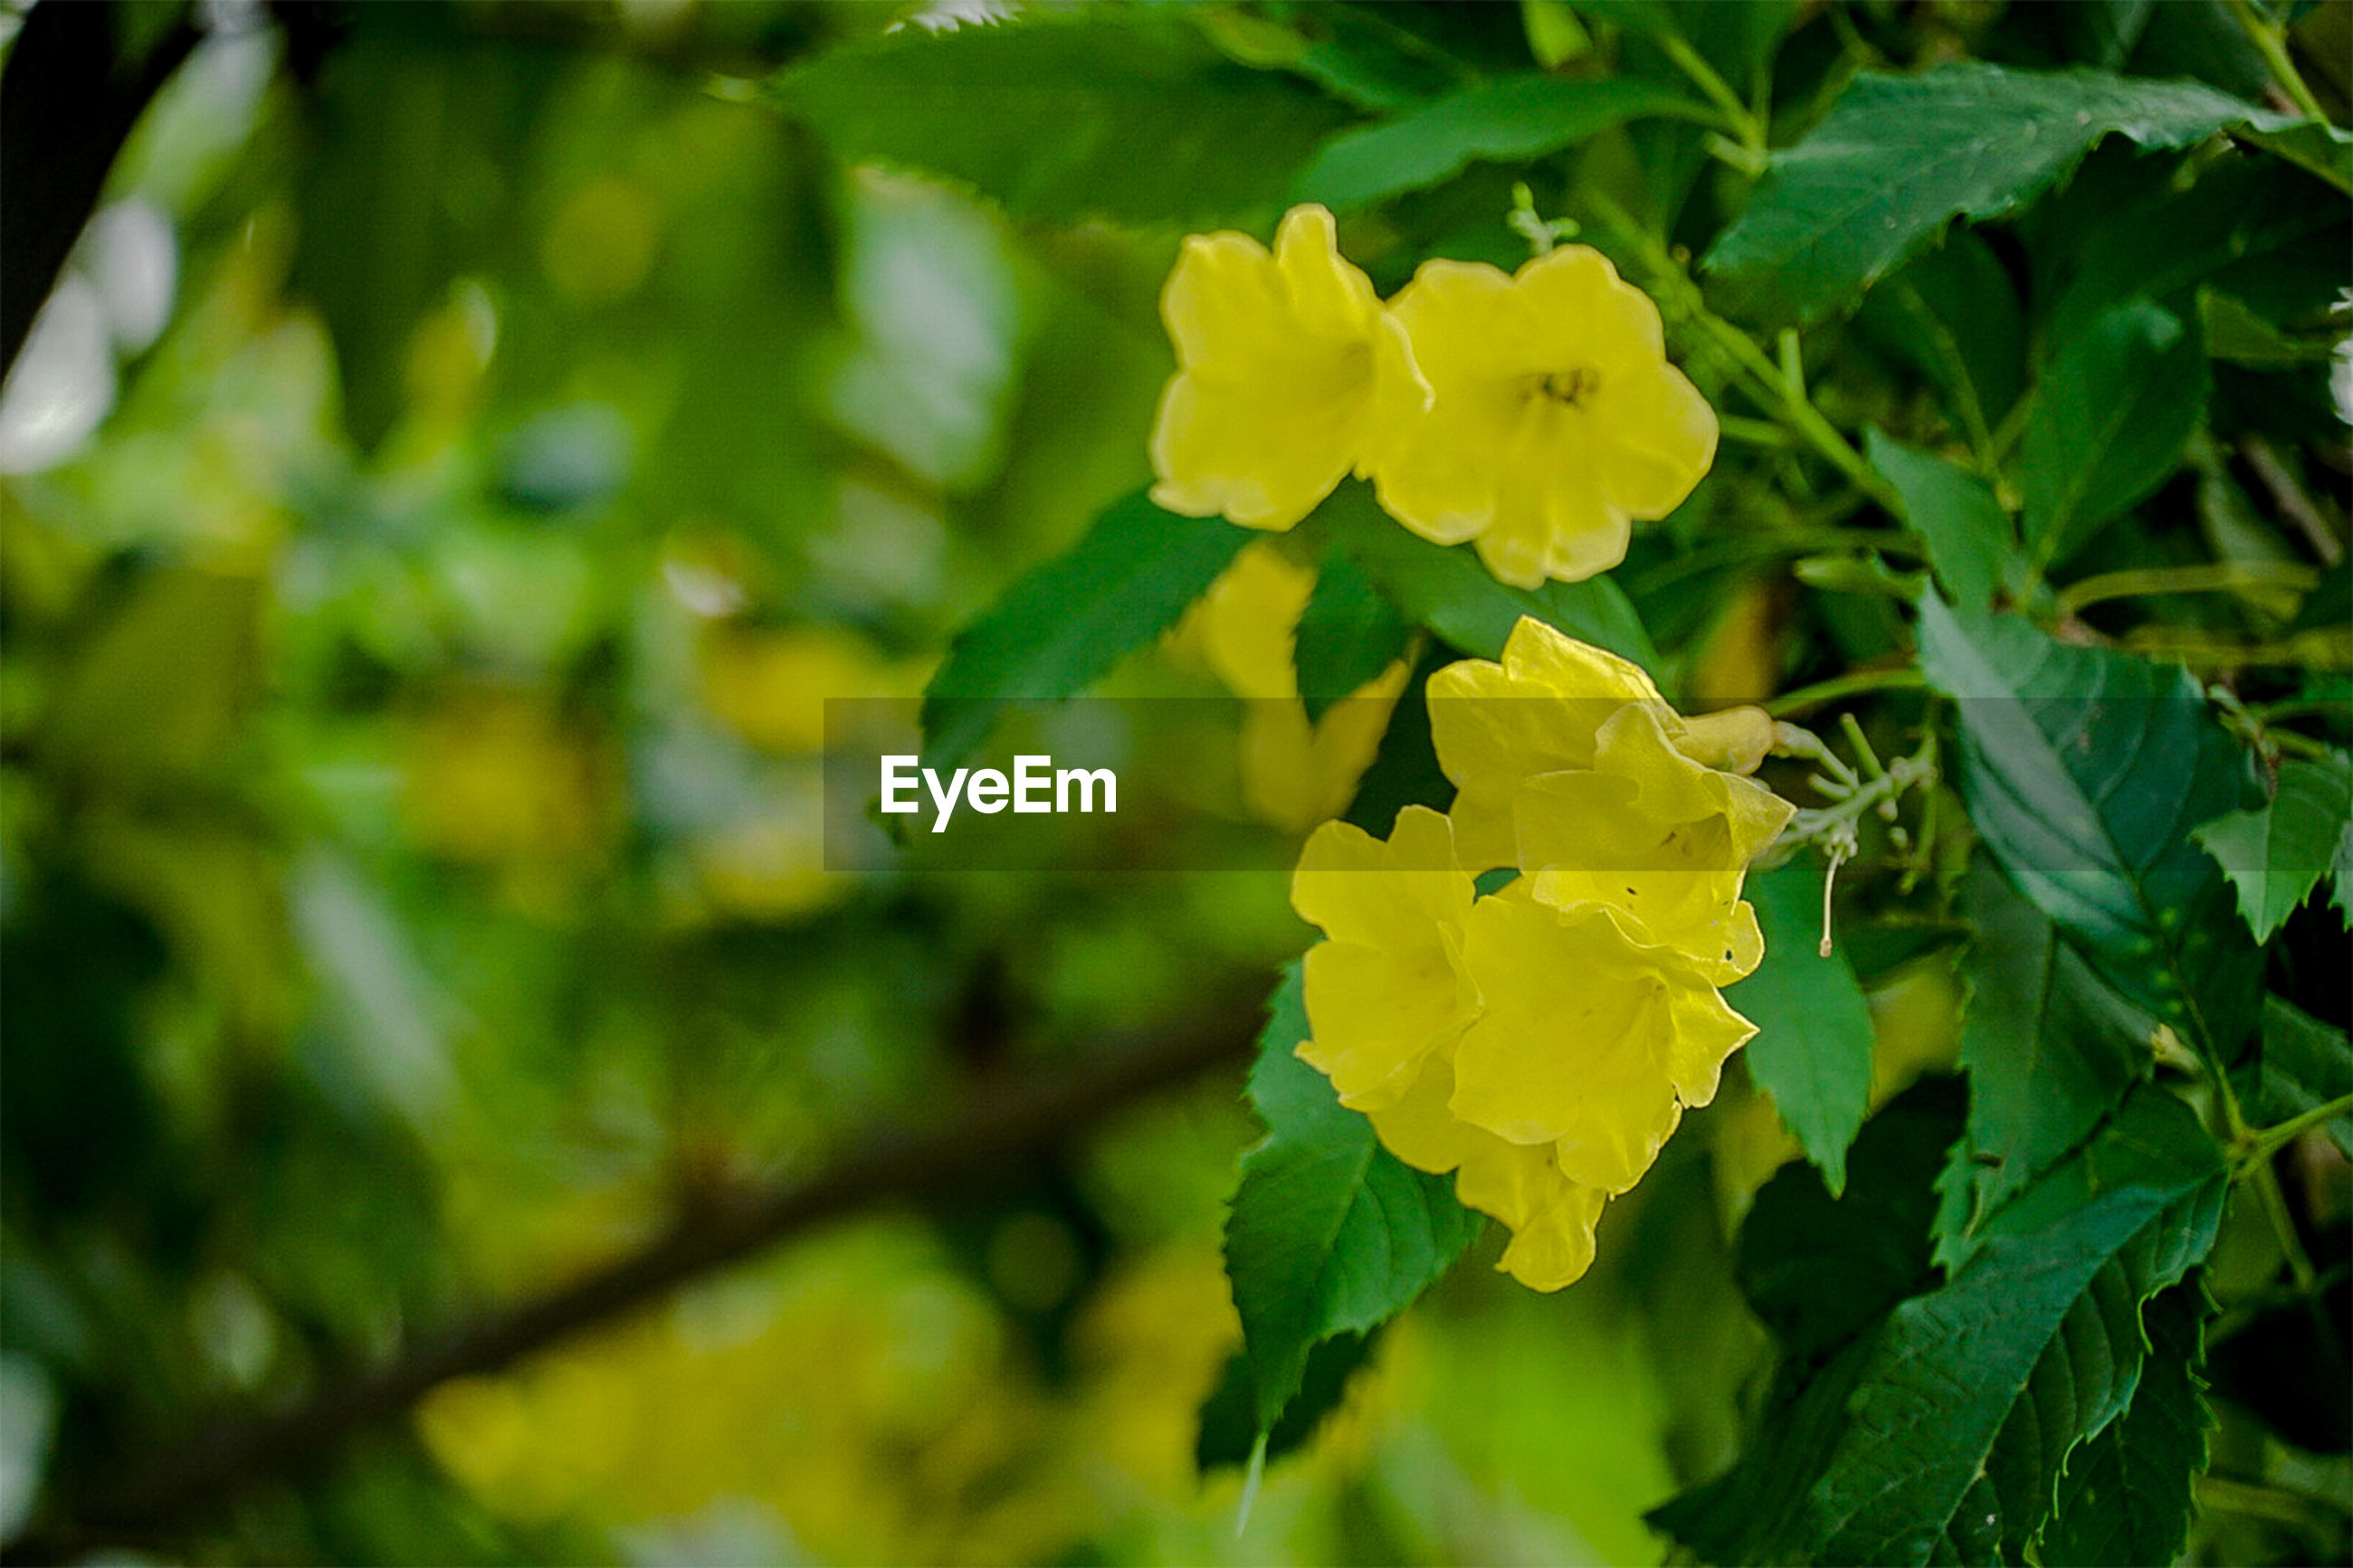 CLOSE-UP OF YELLOW FLOWERING PLANT AGAINST BLURRED BACKGROUND